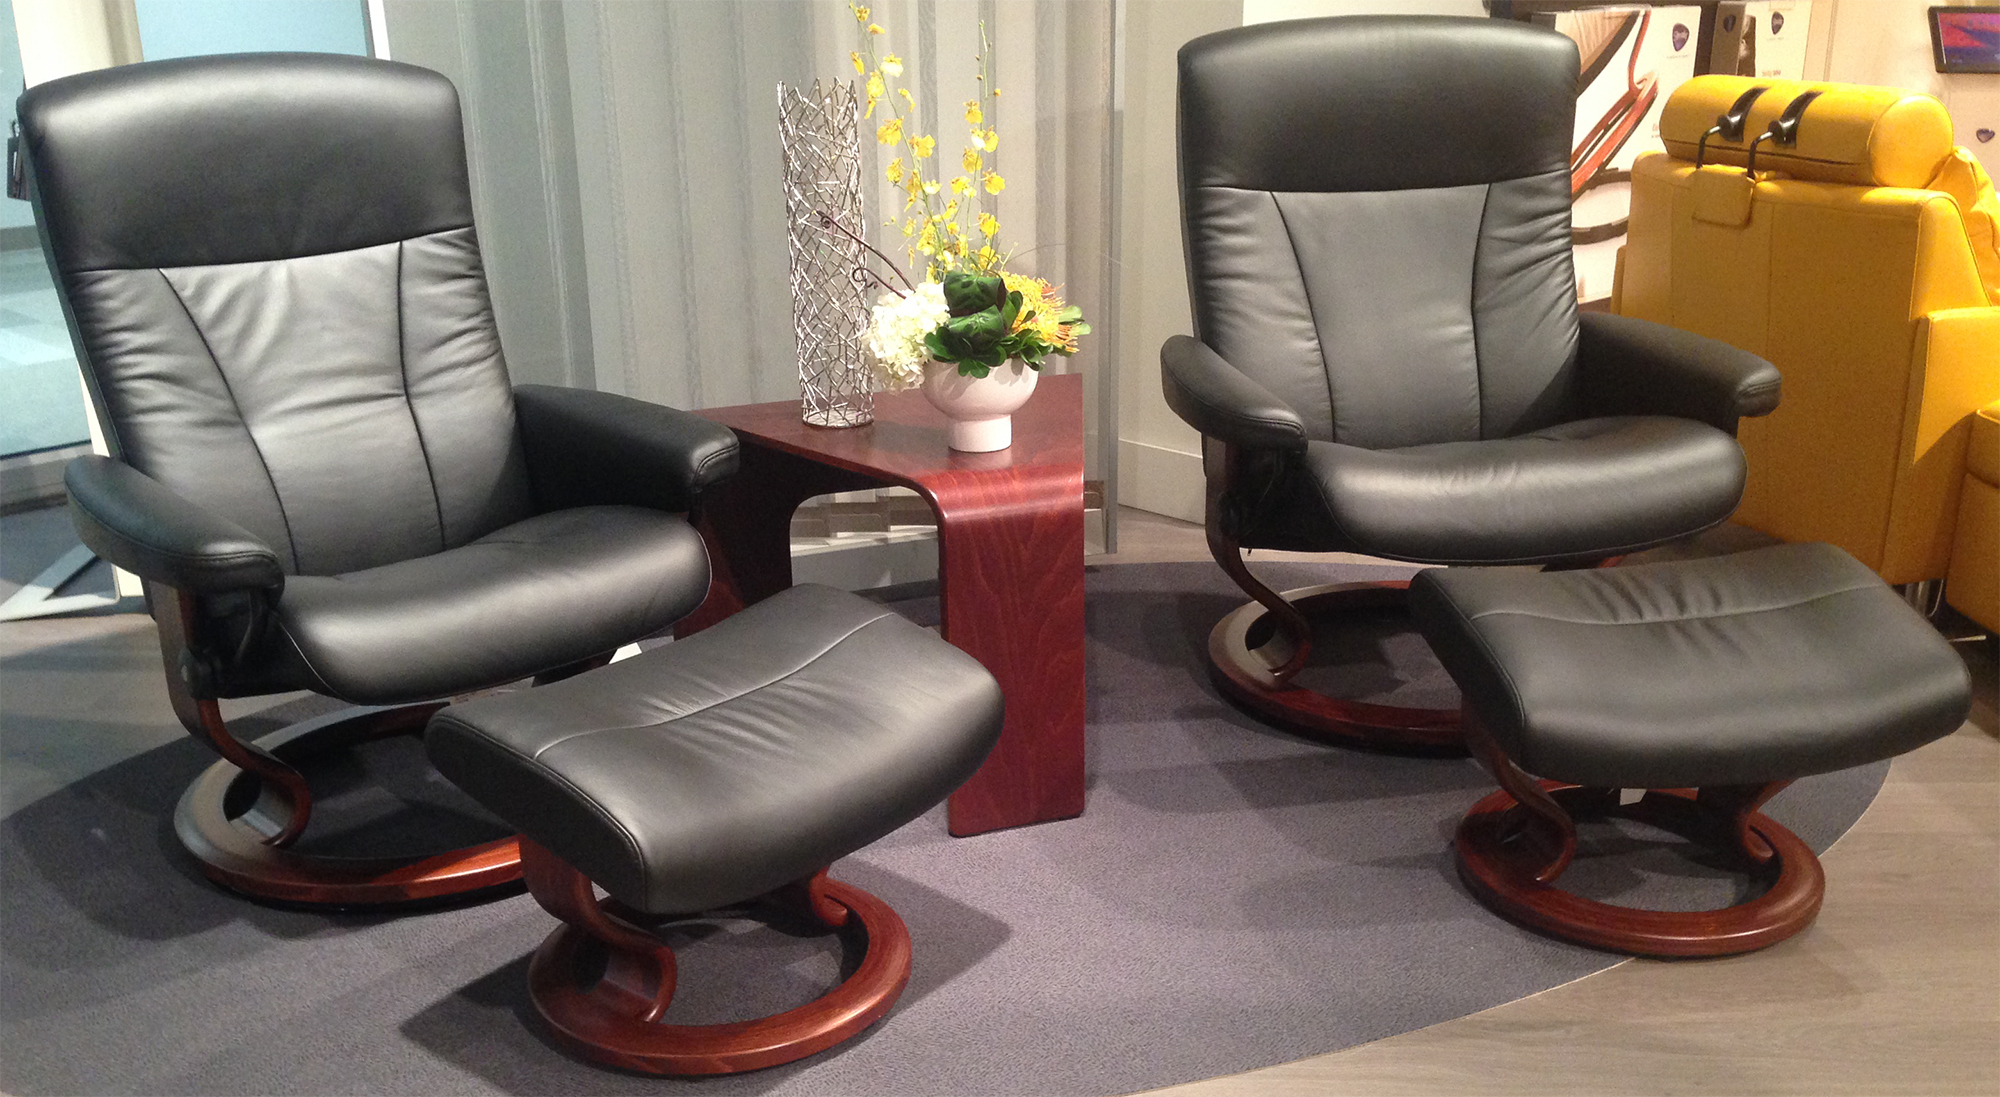 Ekornes Sofa Stressless President Recliner Classic Wood Base Chair And Ottoman